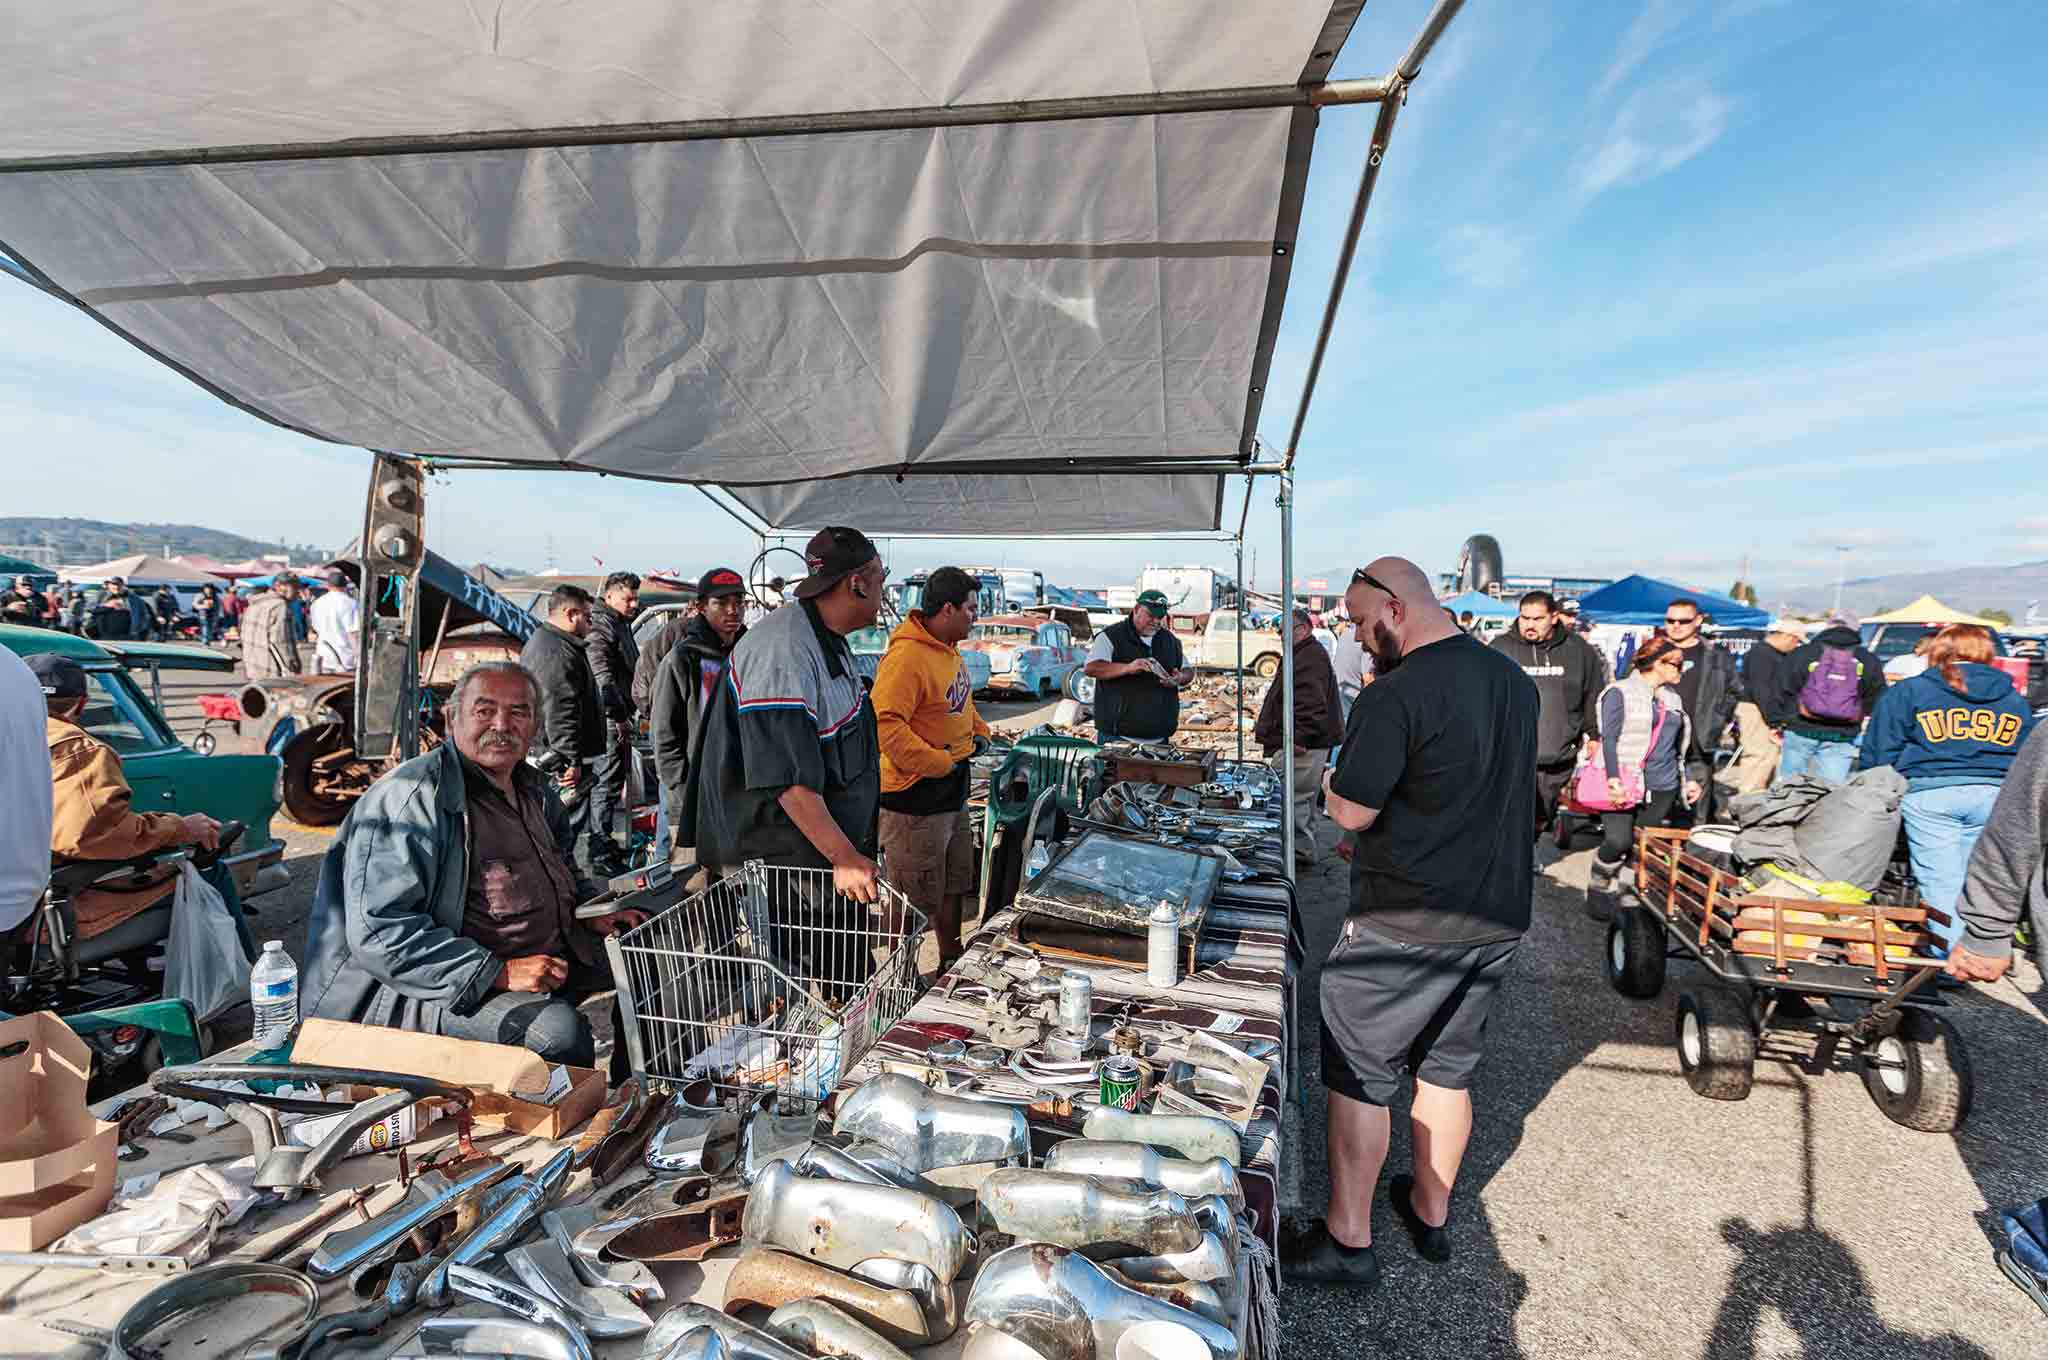 The Pomona Swap Meet Is A So Cal Tradition For Car